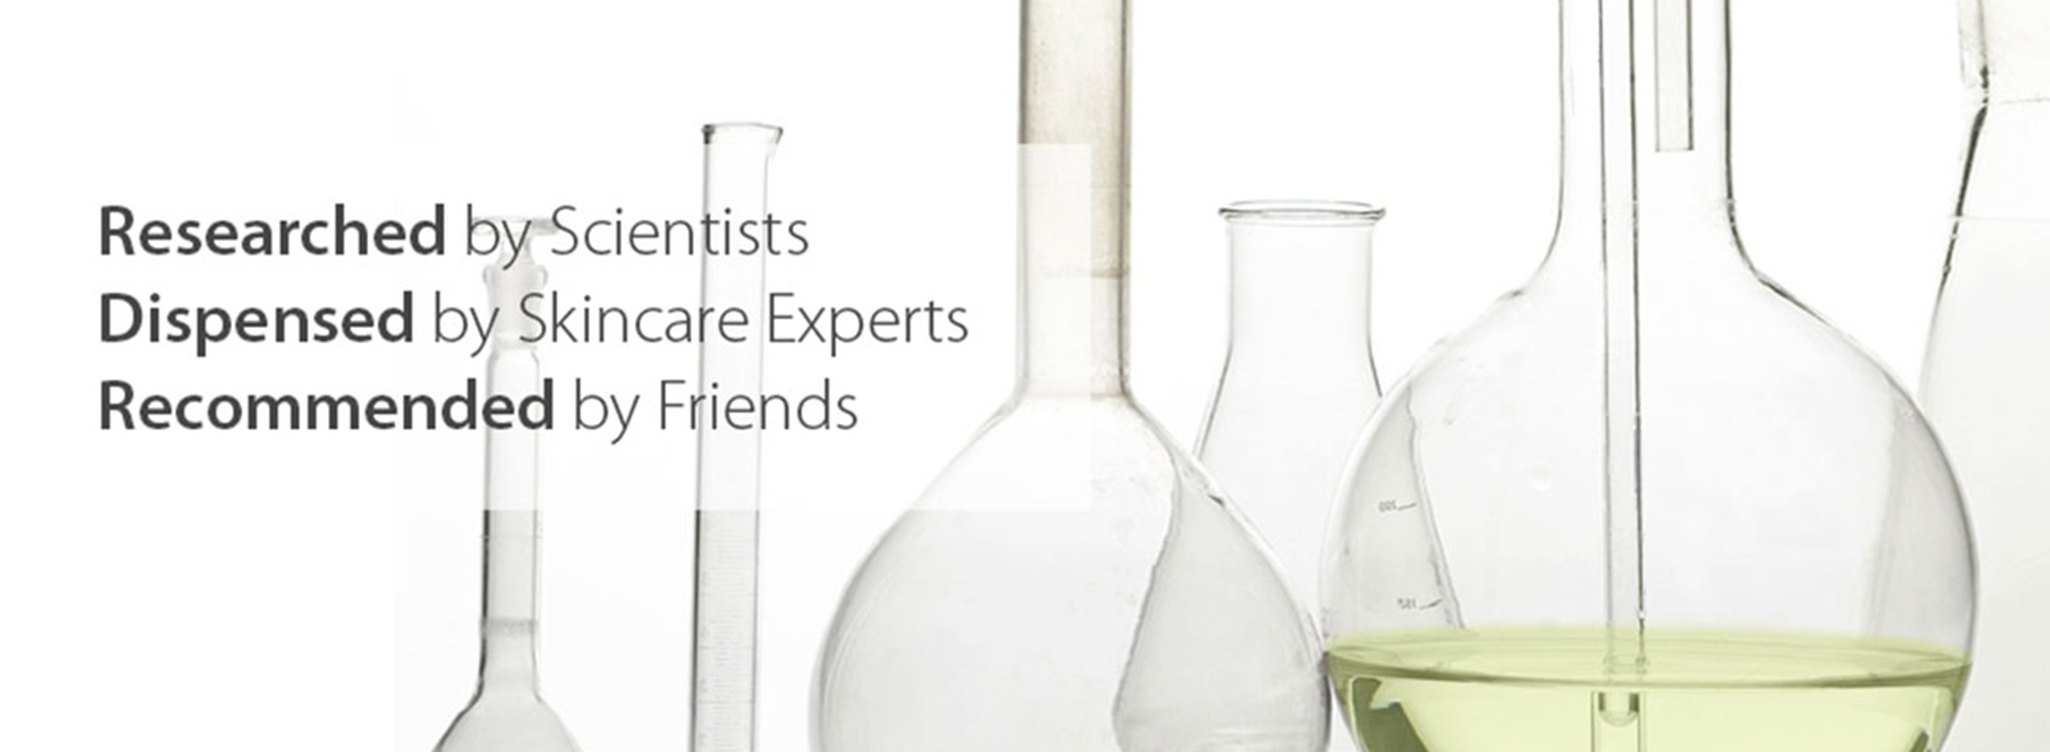 Research By Scientist, Dispensed by Skincare Experts, Recommended by Friends